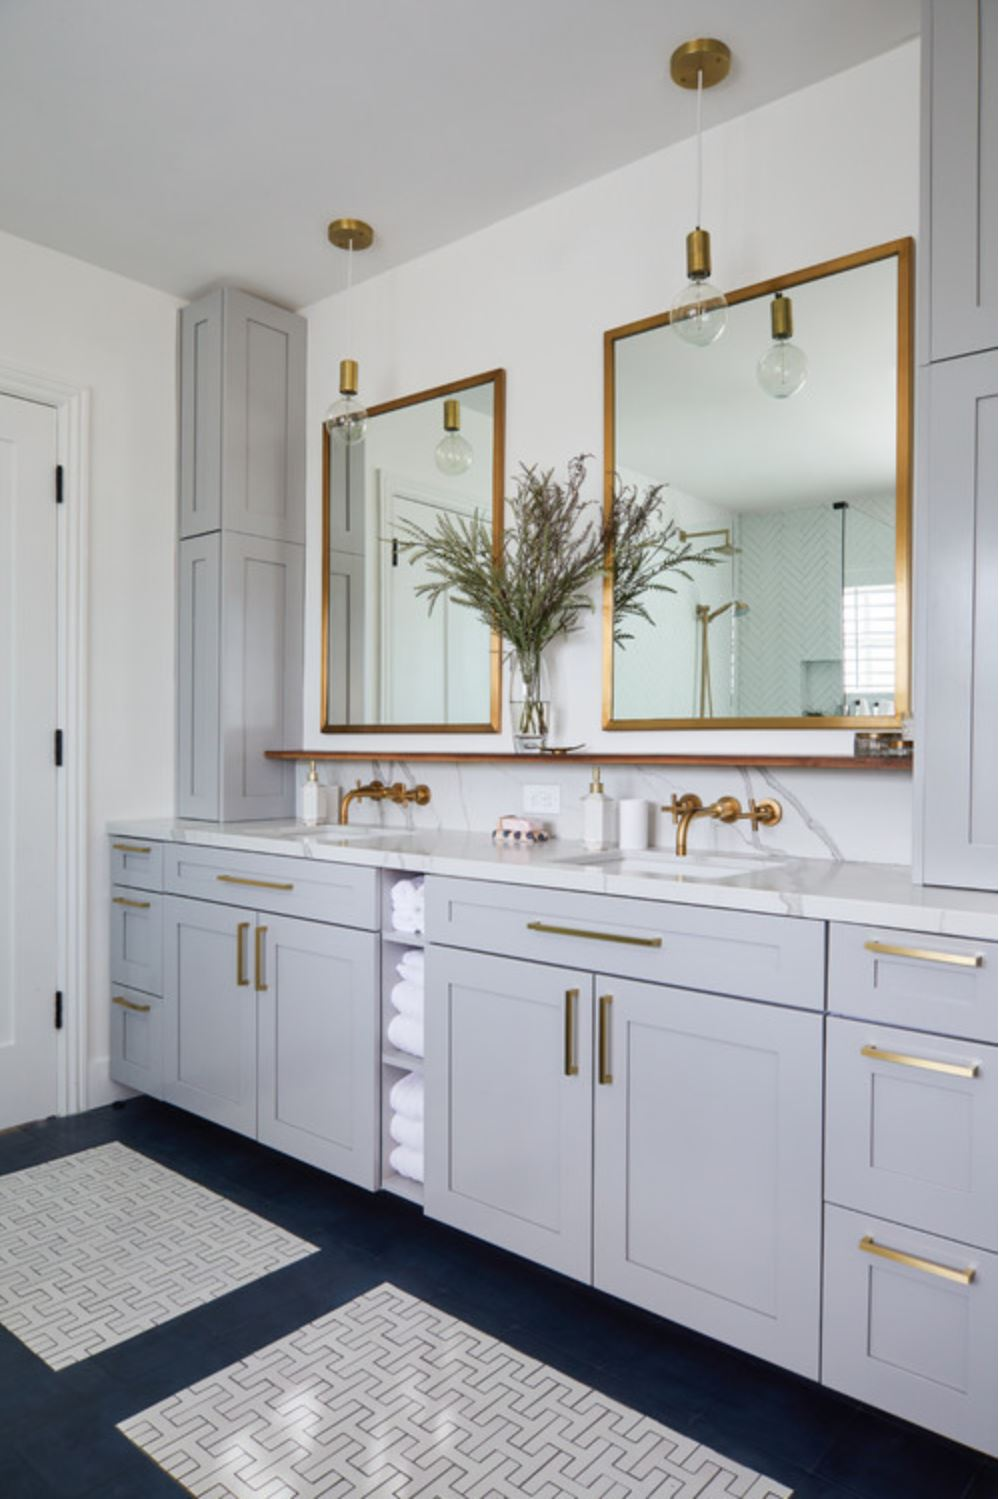 From Realtor Magazine 12 30 2019 one of the Top 10 Bathrooms of 2019 Hoey Team eXp Realty